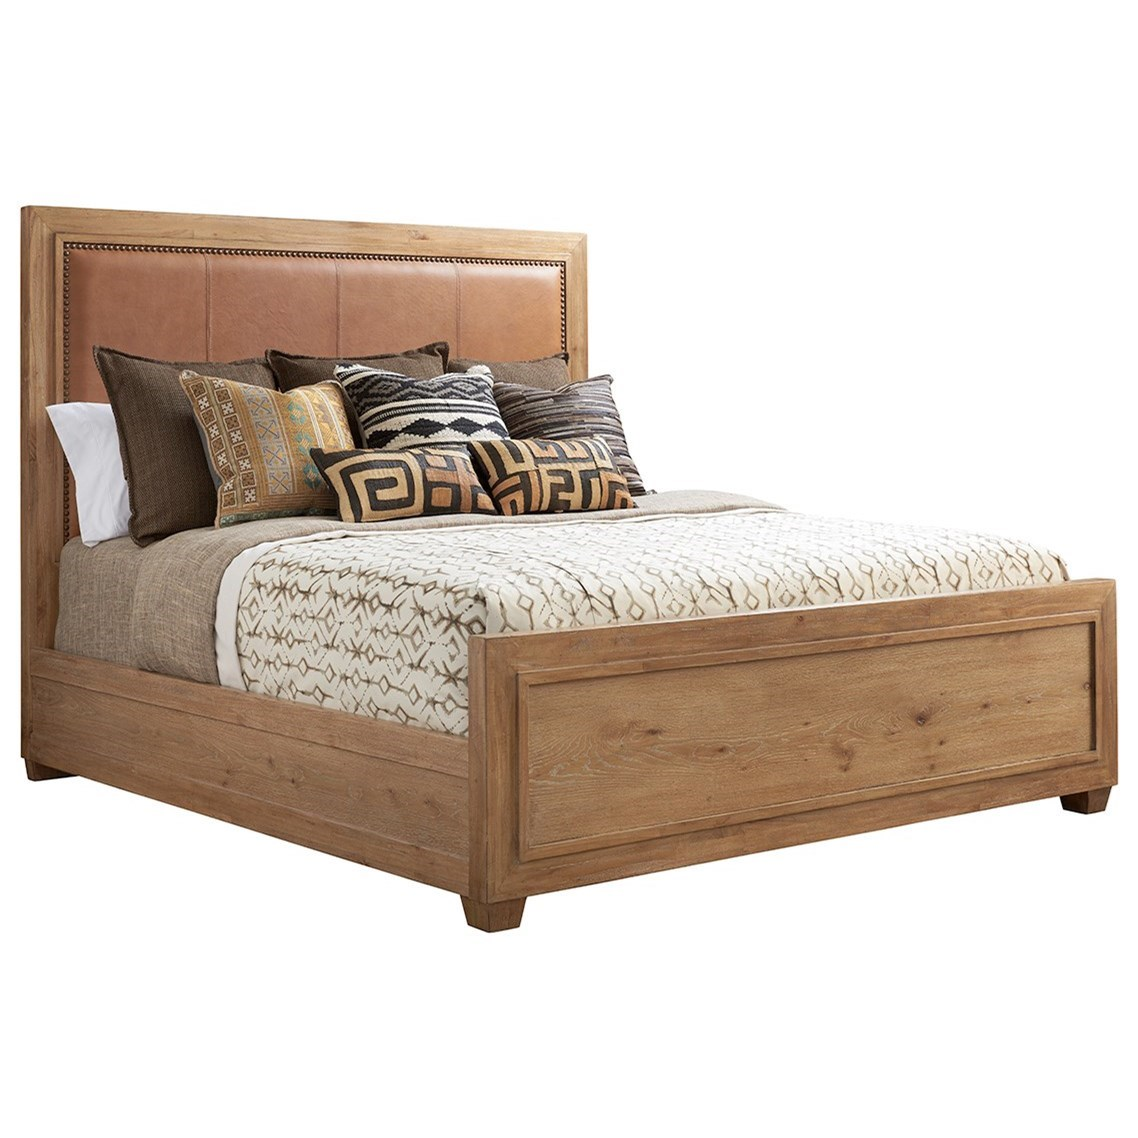 Los Altos Antilles Upholstered Panel Bed 6/6 King by Tommy Bahama Home at Baer's Furniture